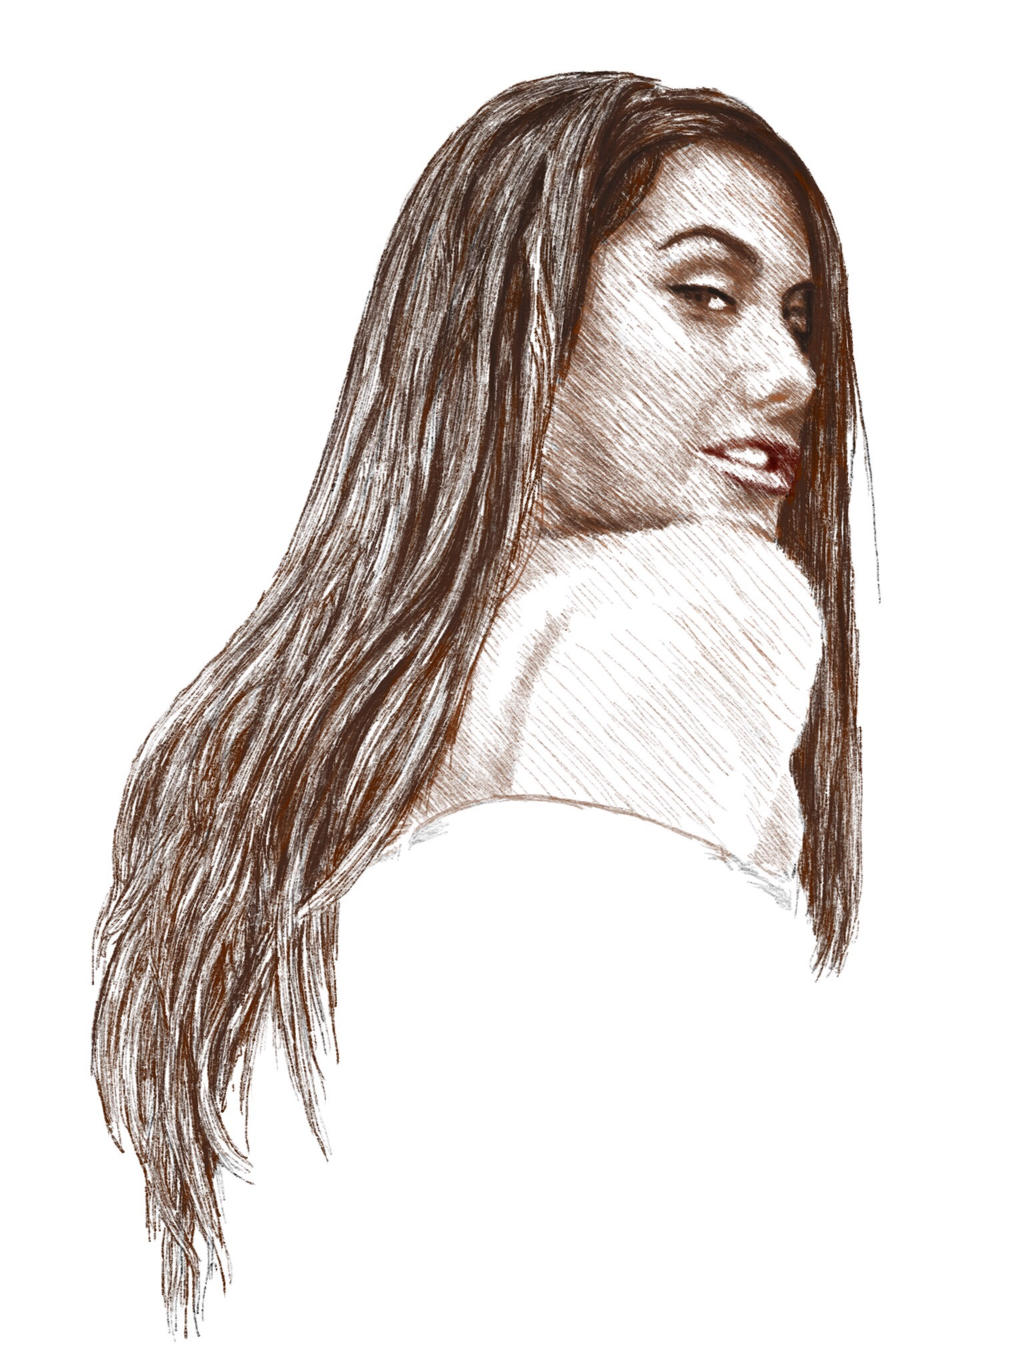 August ames drawing